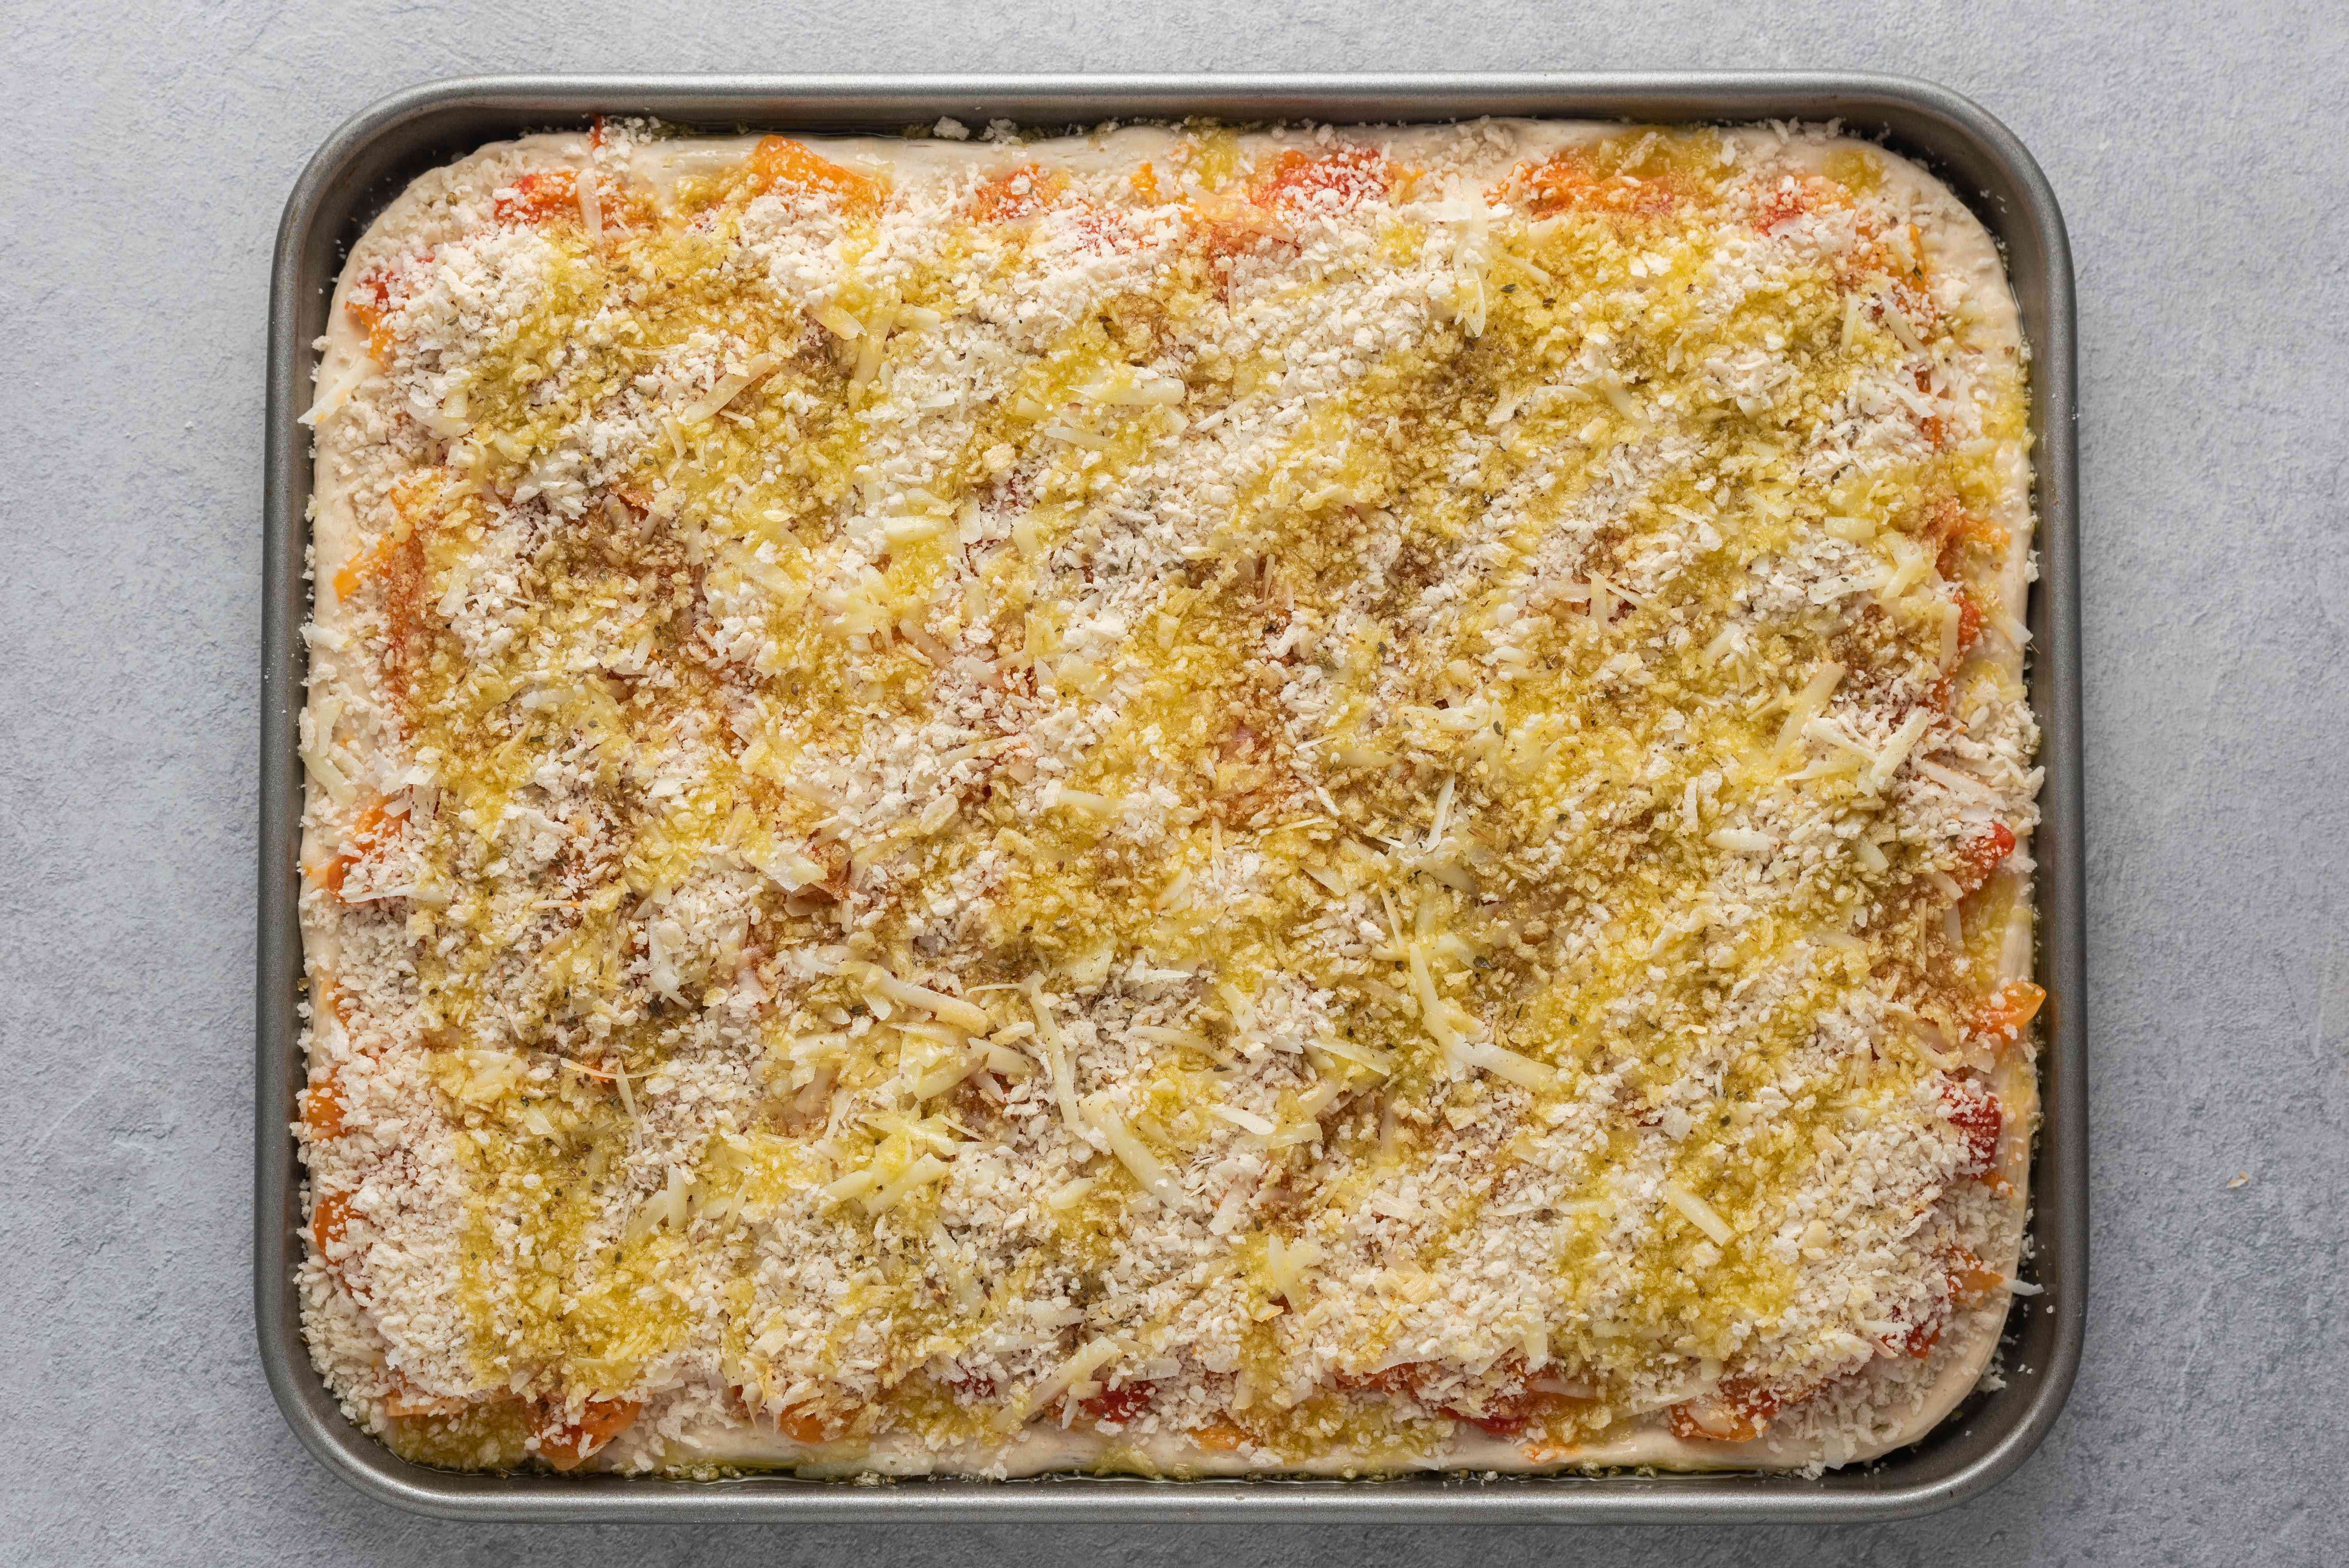 grated cheese, breadcrumbs, oregano and olive oil on top of pizza